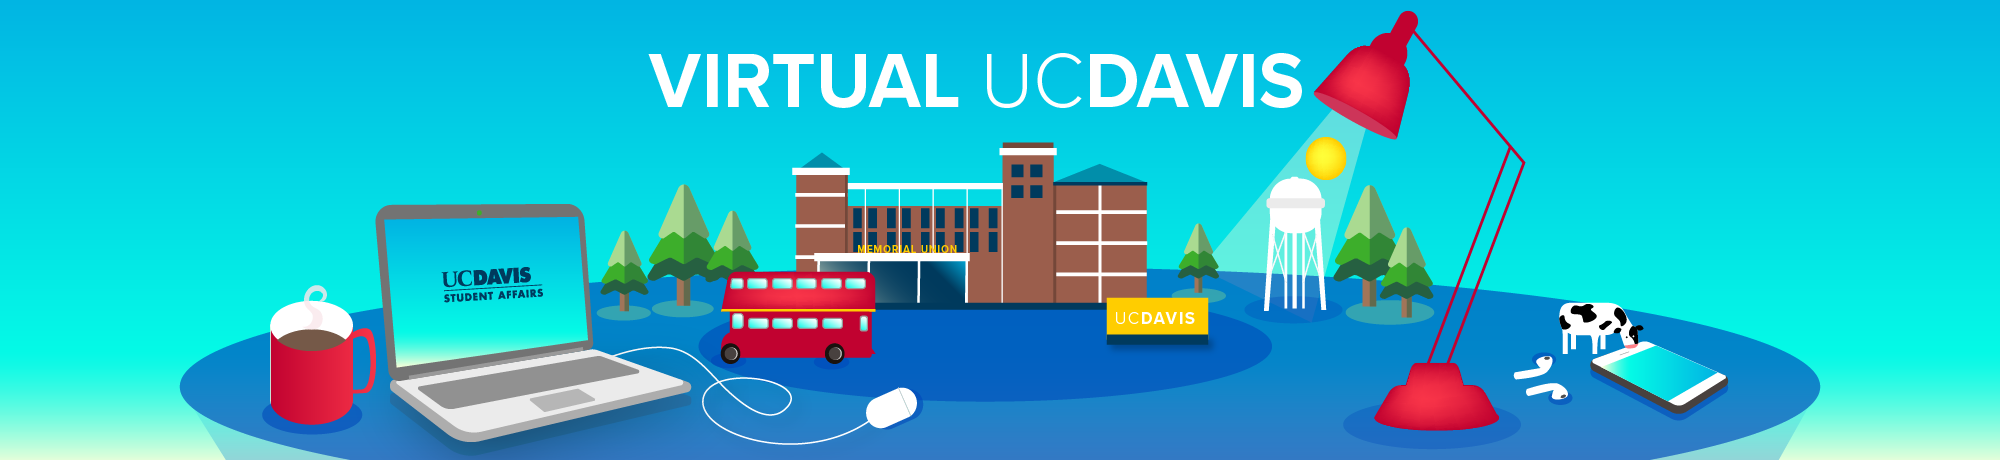 virtual UC Davis graphic